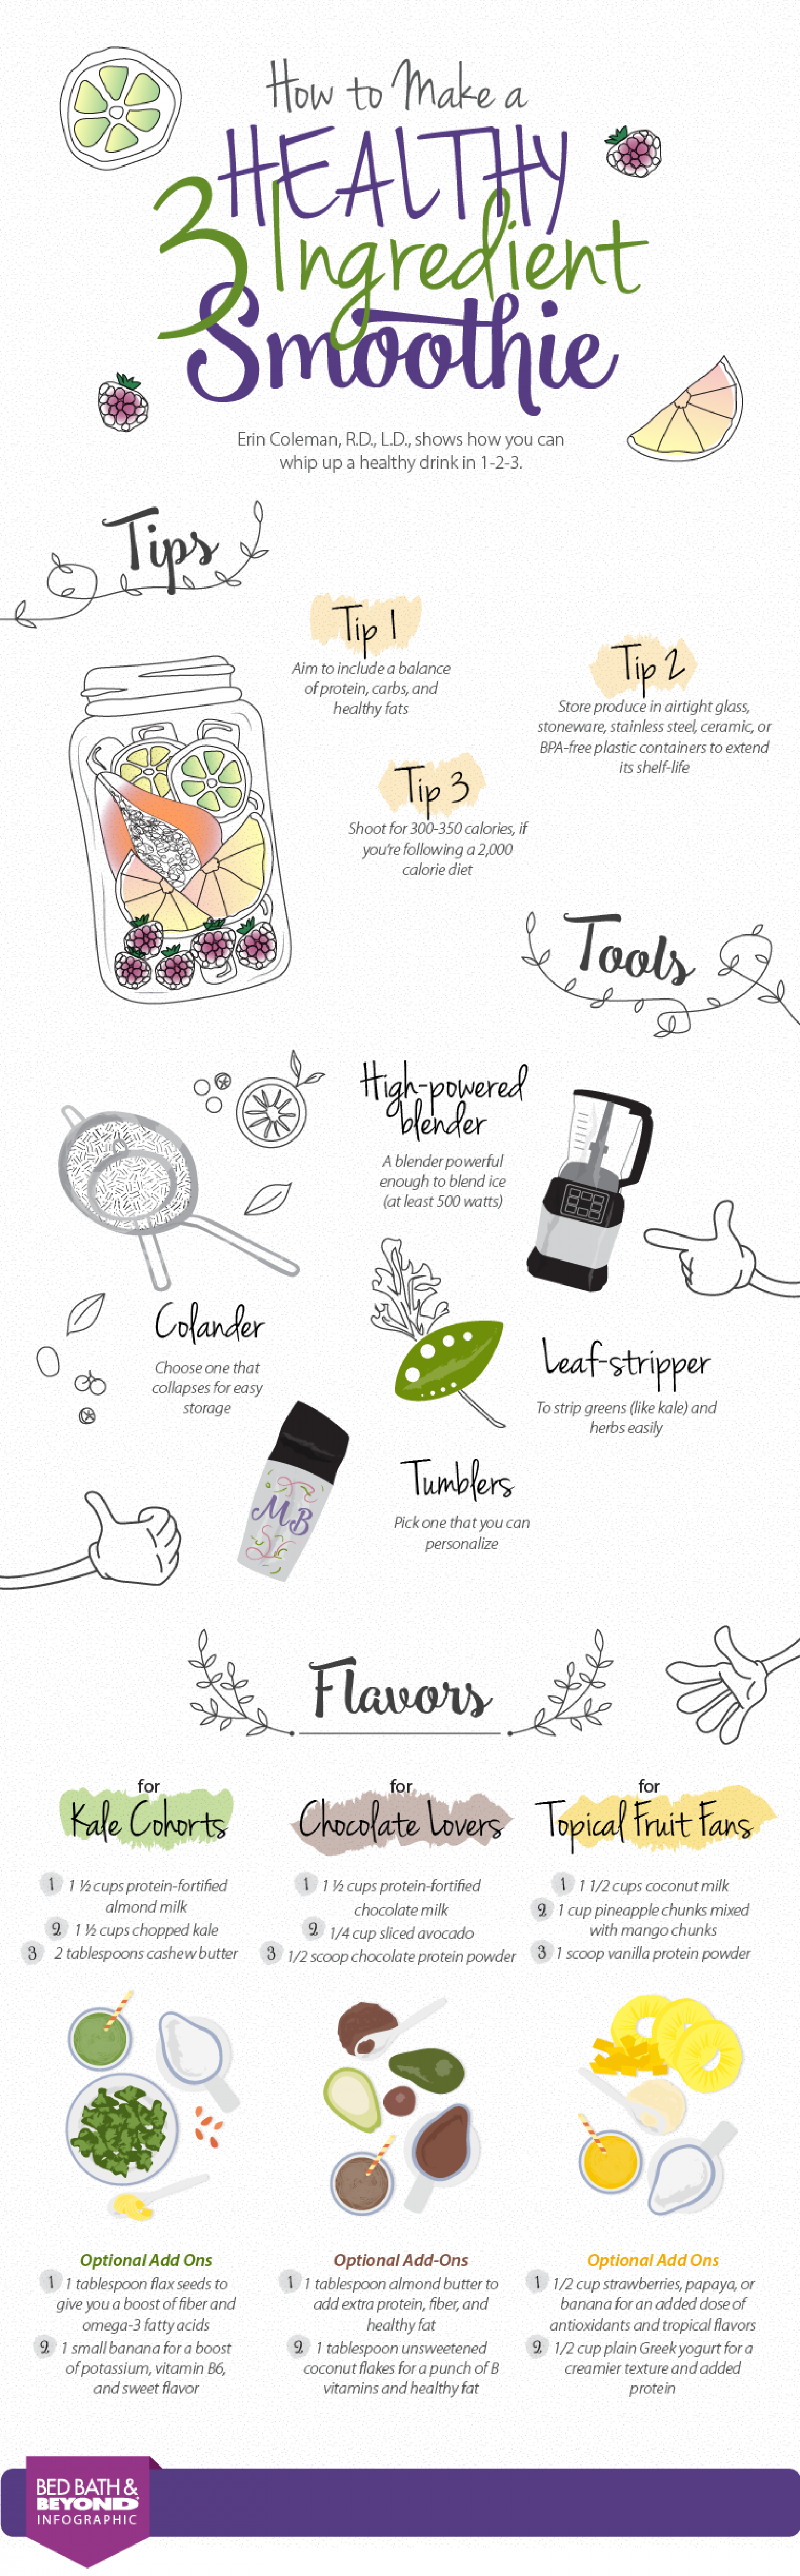 Healthy 3 ingredient smoothies Infographic